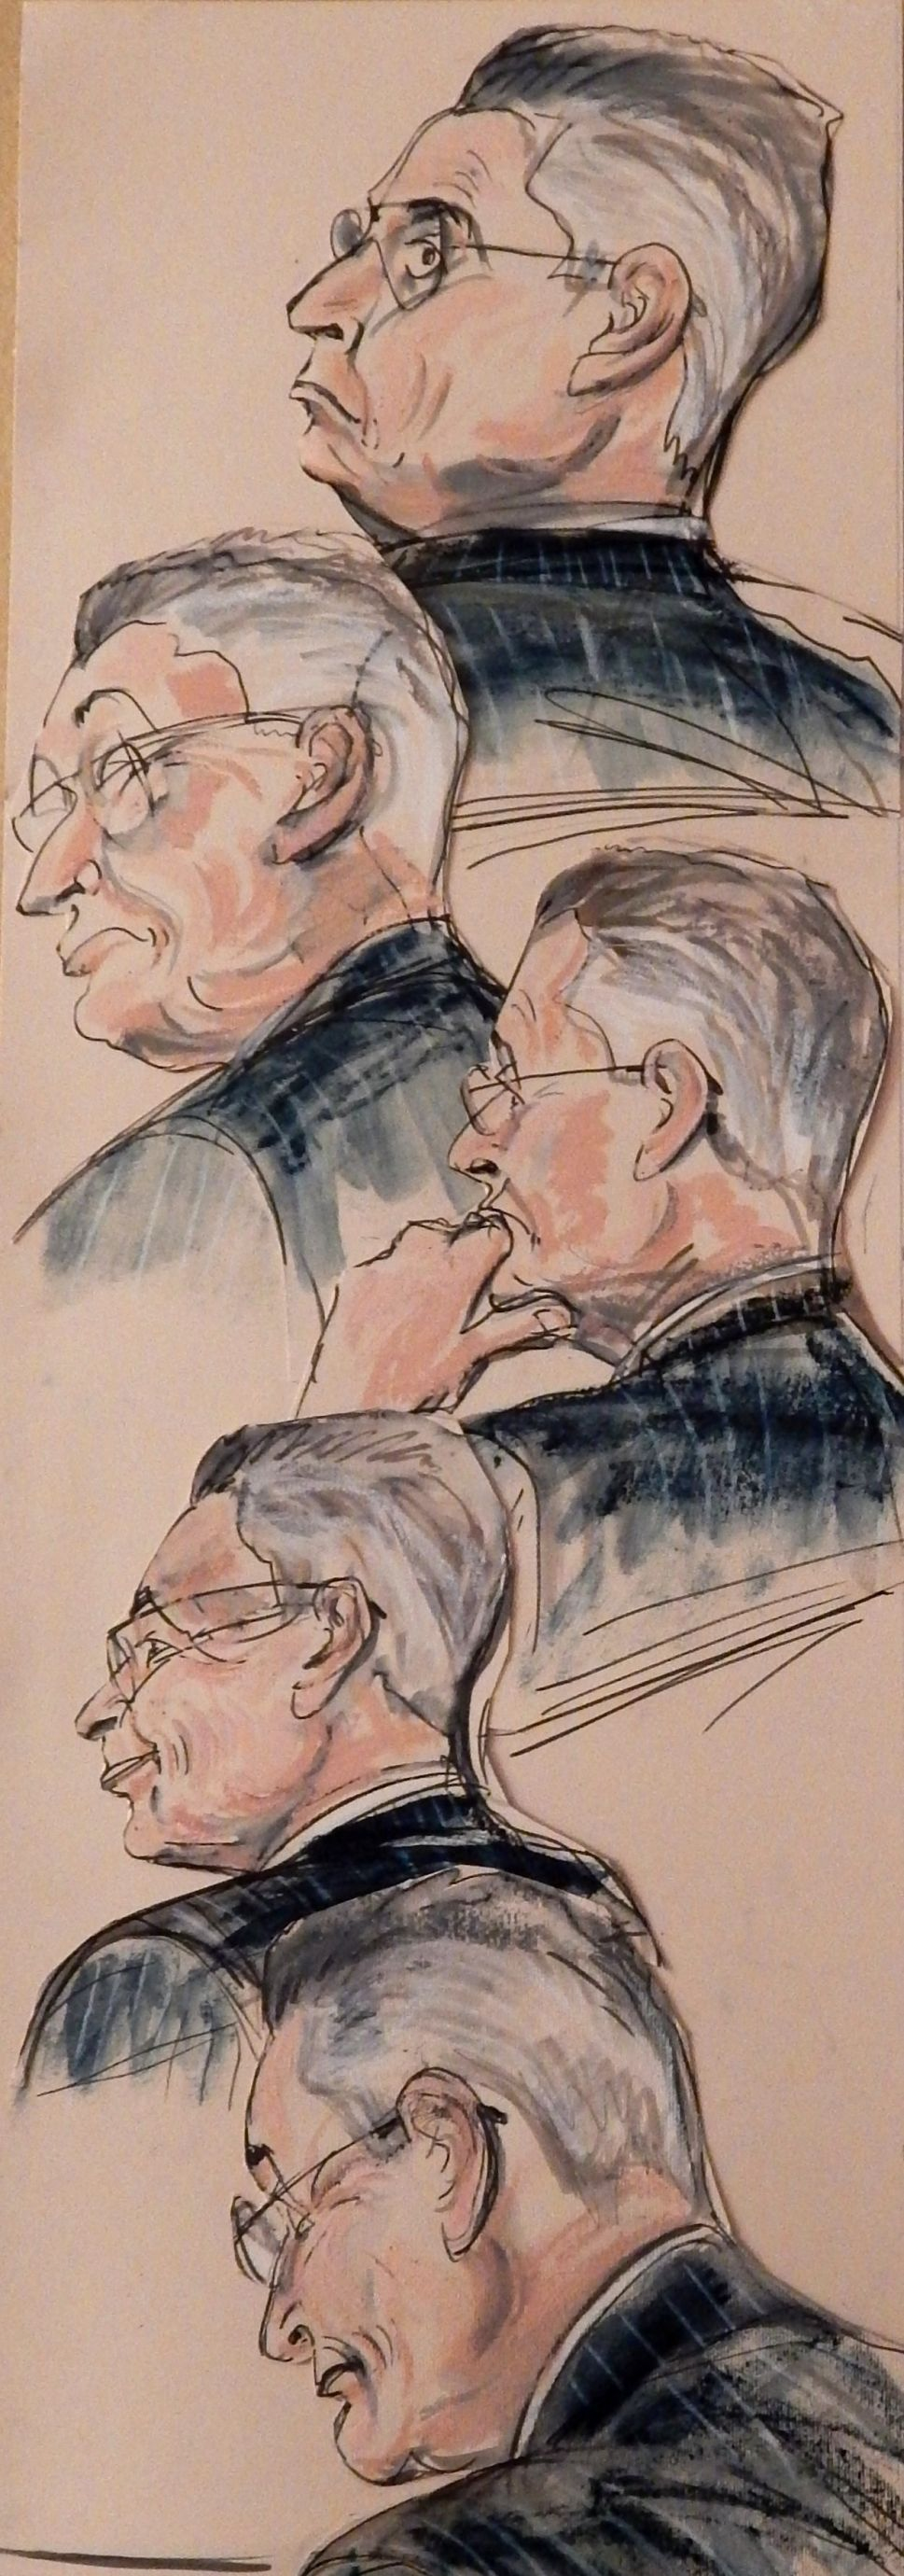 The Many Faces of Sheldon Silver